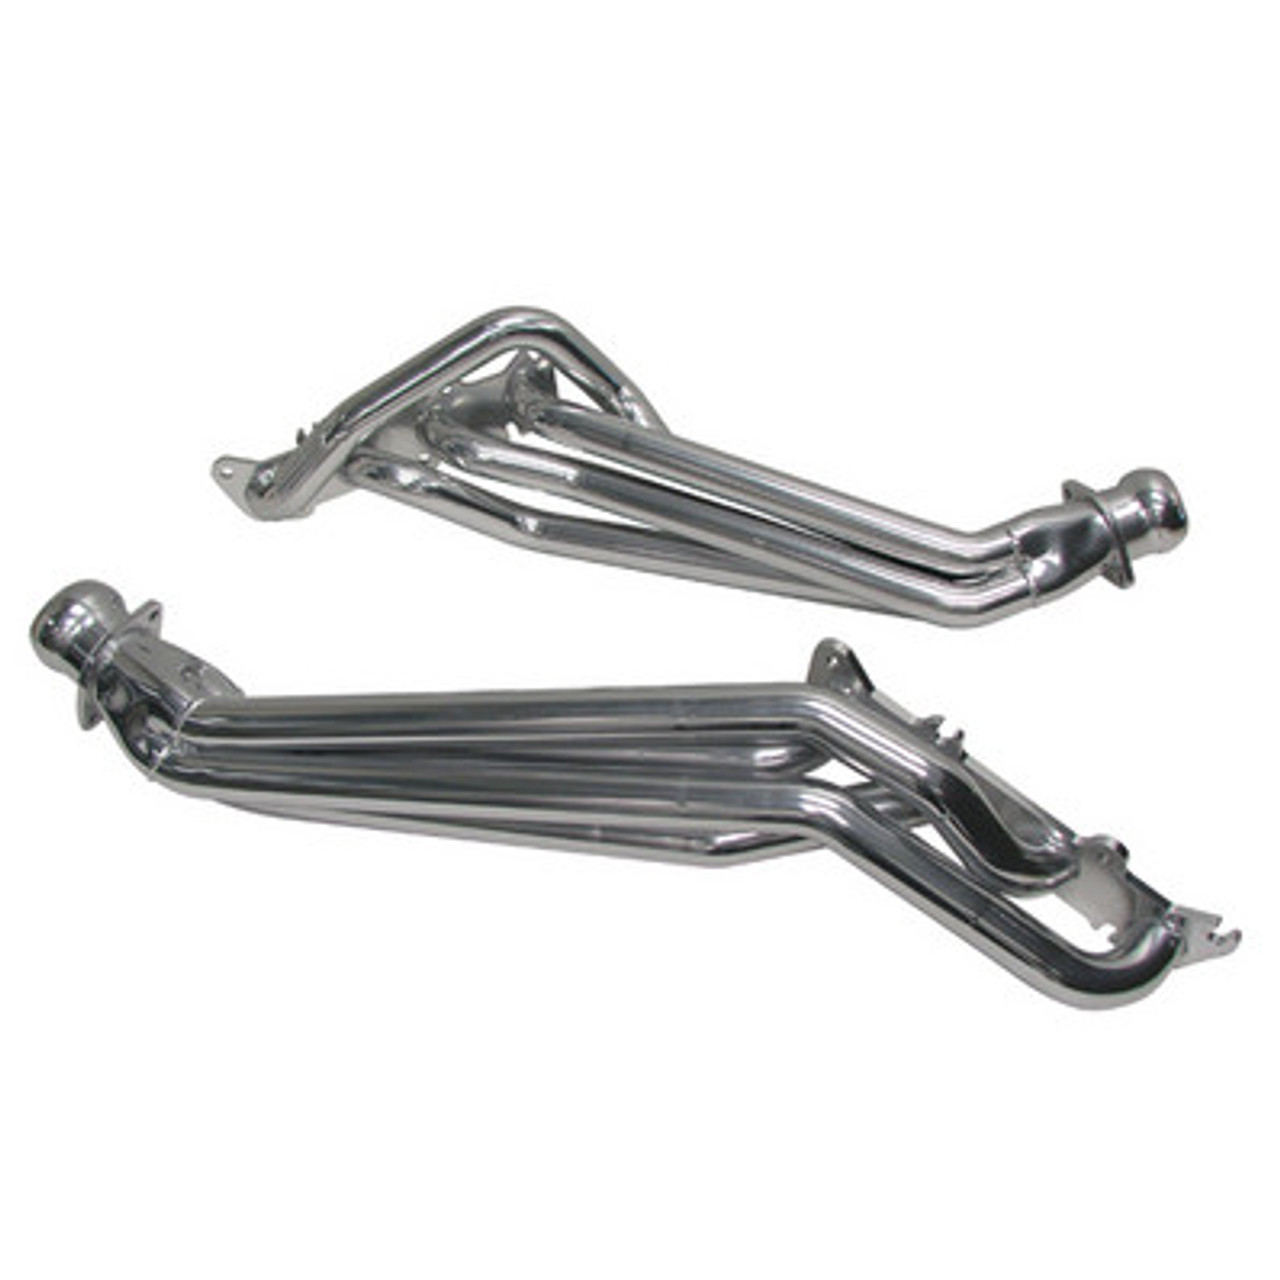 BBK Performance 1655 High-Flow Short Mid X-Pipe Assembly Fits 11-14 Mustang